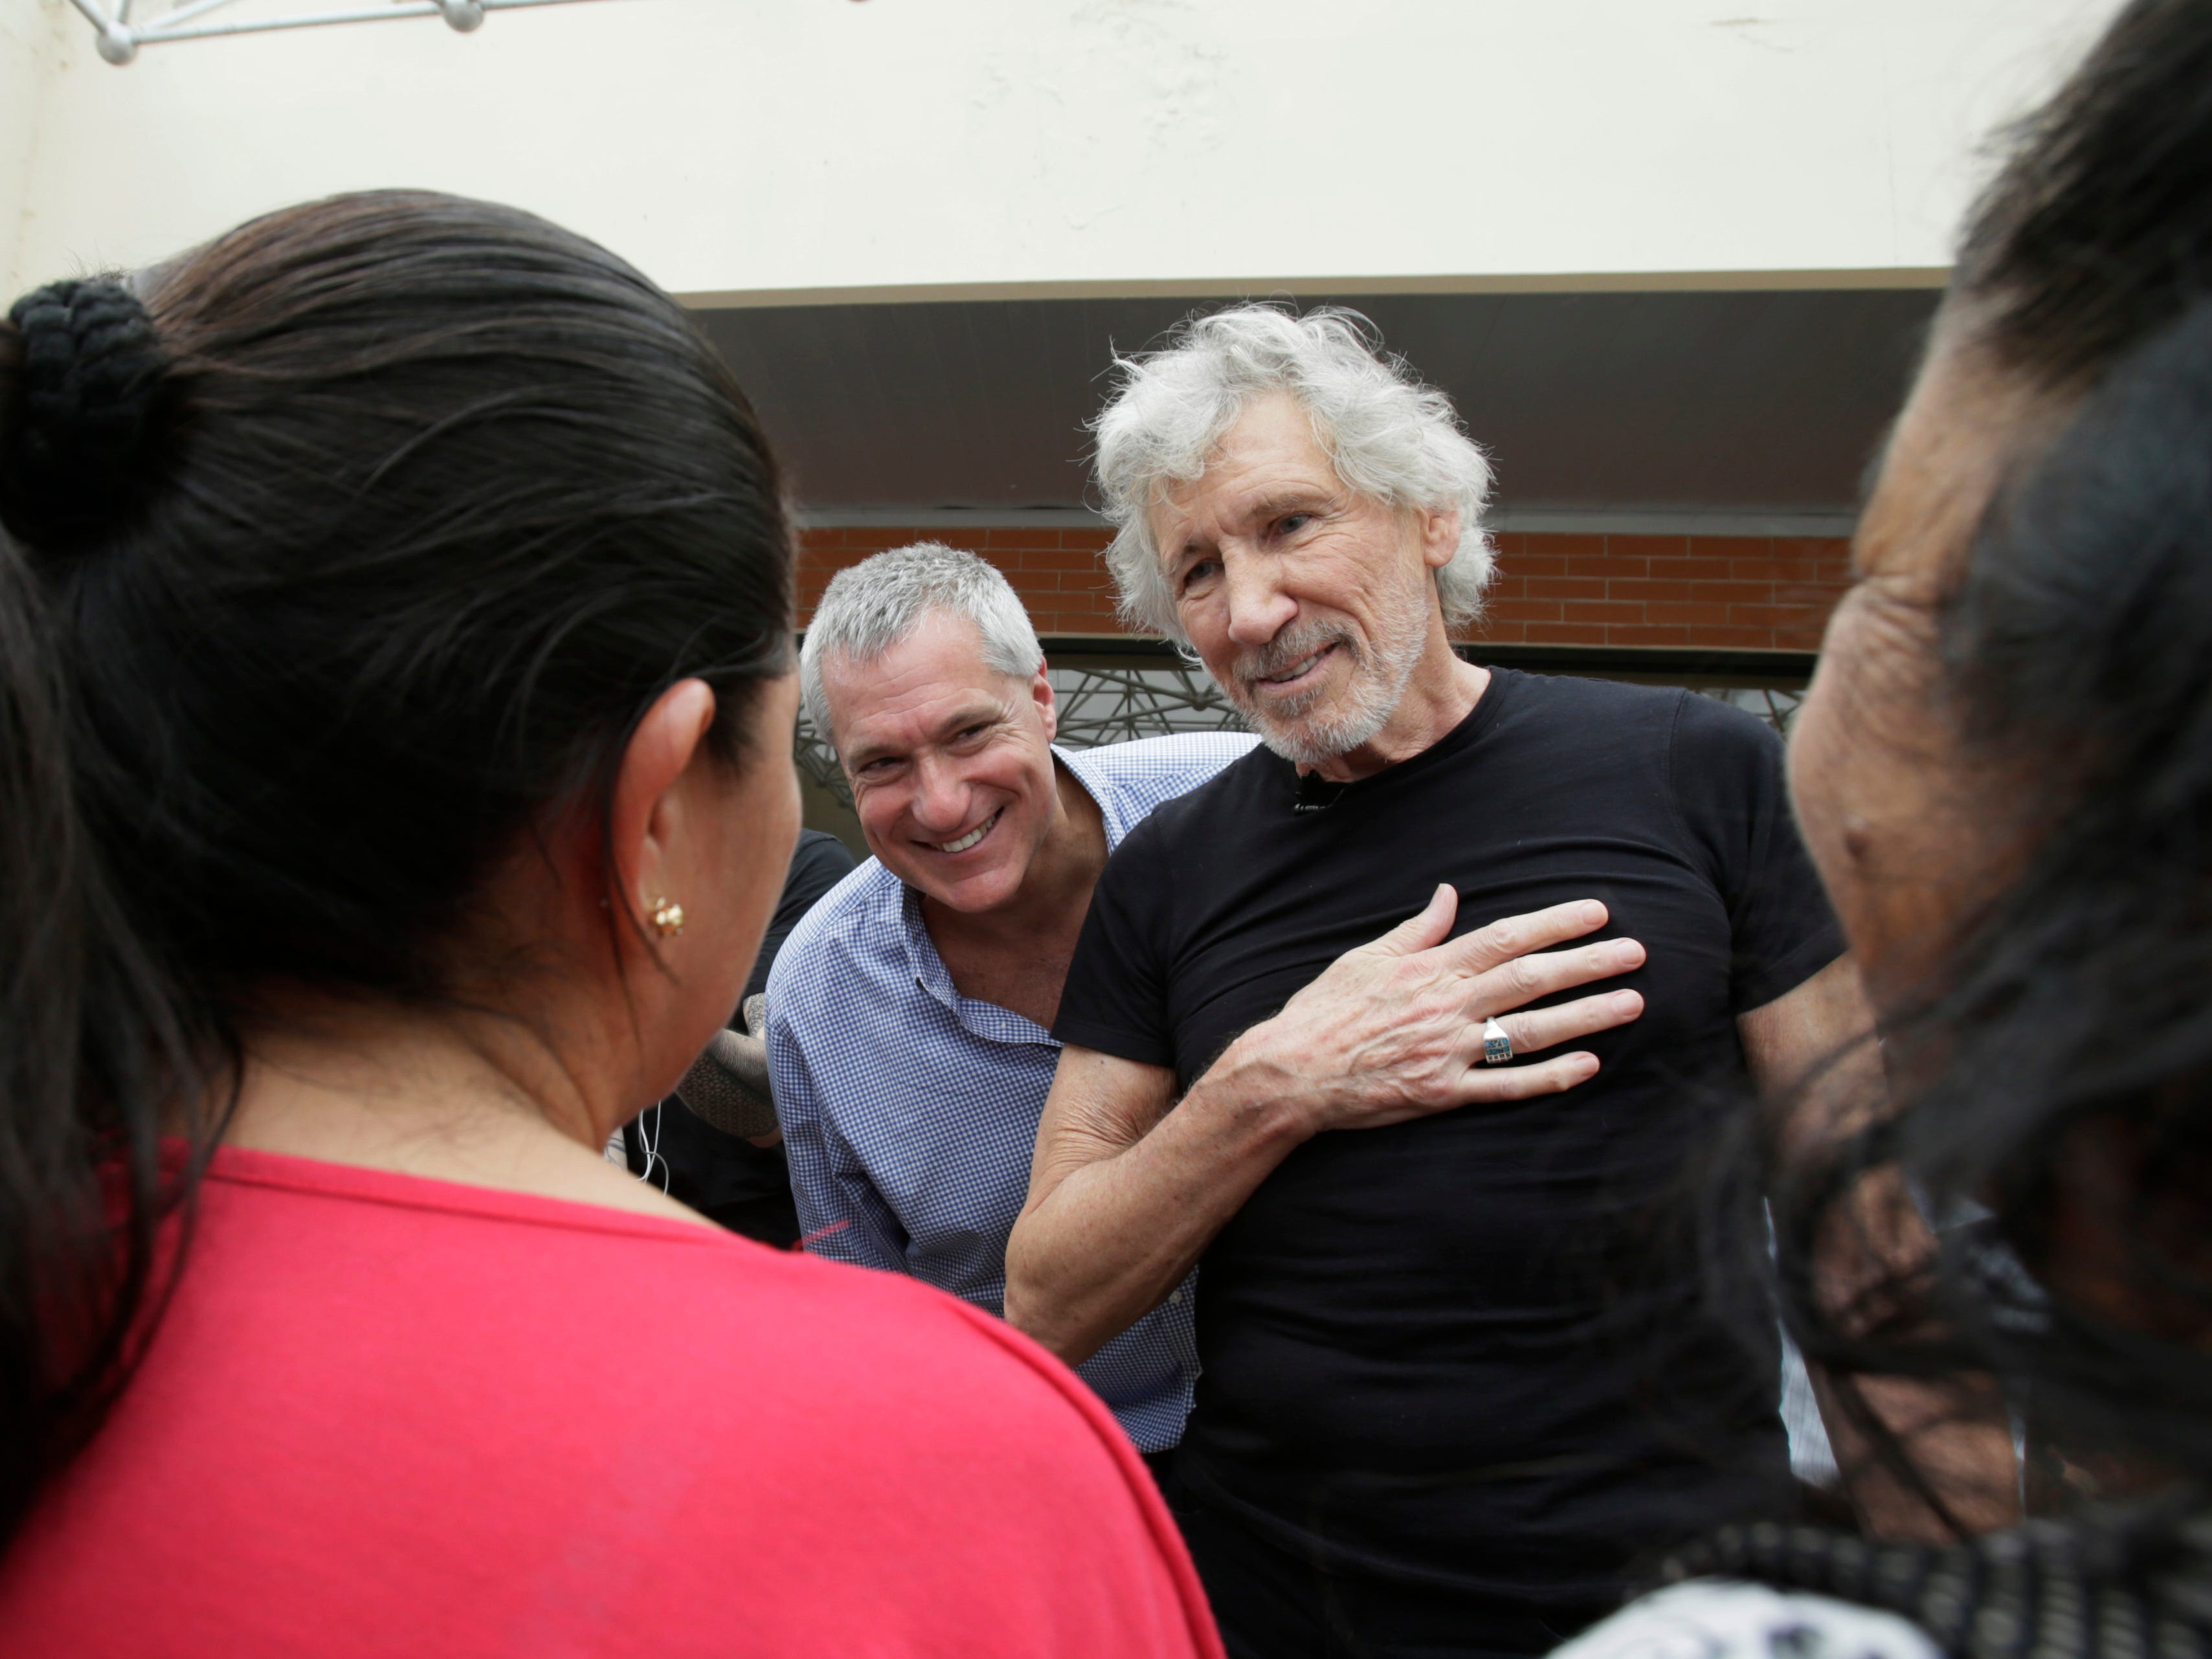 Musician and activist Roger Waters is welcomed upon arrival to Lago Agrio's airport by residents affected by oil extraction in Lago Agrio, Ecuador, Monday, Nov. 19, 2018. Ecuadoreans tried to get Chevron to pay for environmental damage caused to a rainforest by Texaco during its operation of an oil consortium from 1972 to 1990, and were ultimately successful in Ecuador where a court there ordered Chevron to pay $9.5 billion. But in 2014, a judge in New York invalidated the Ecuador judgment, deeming it was obtained through legal malpractice.